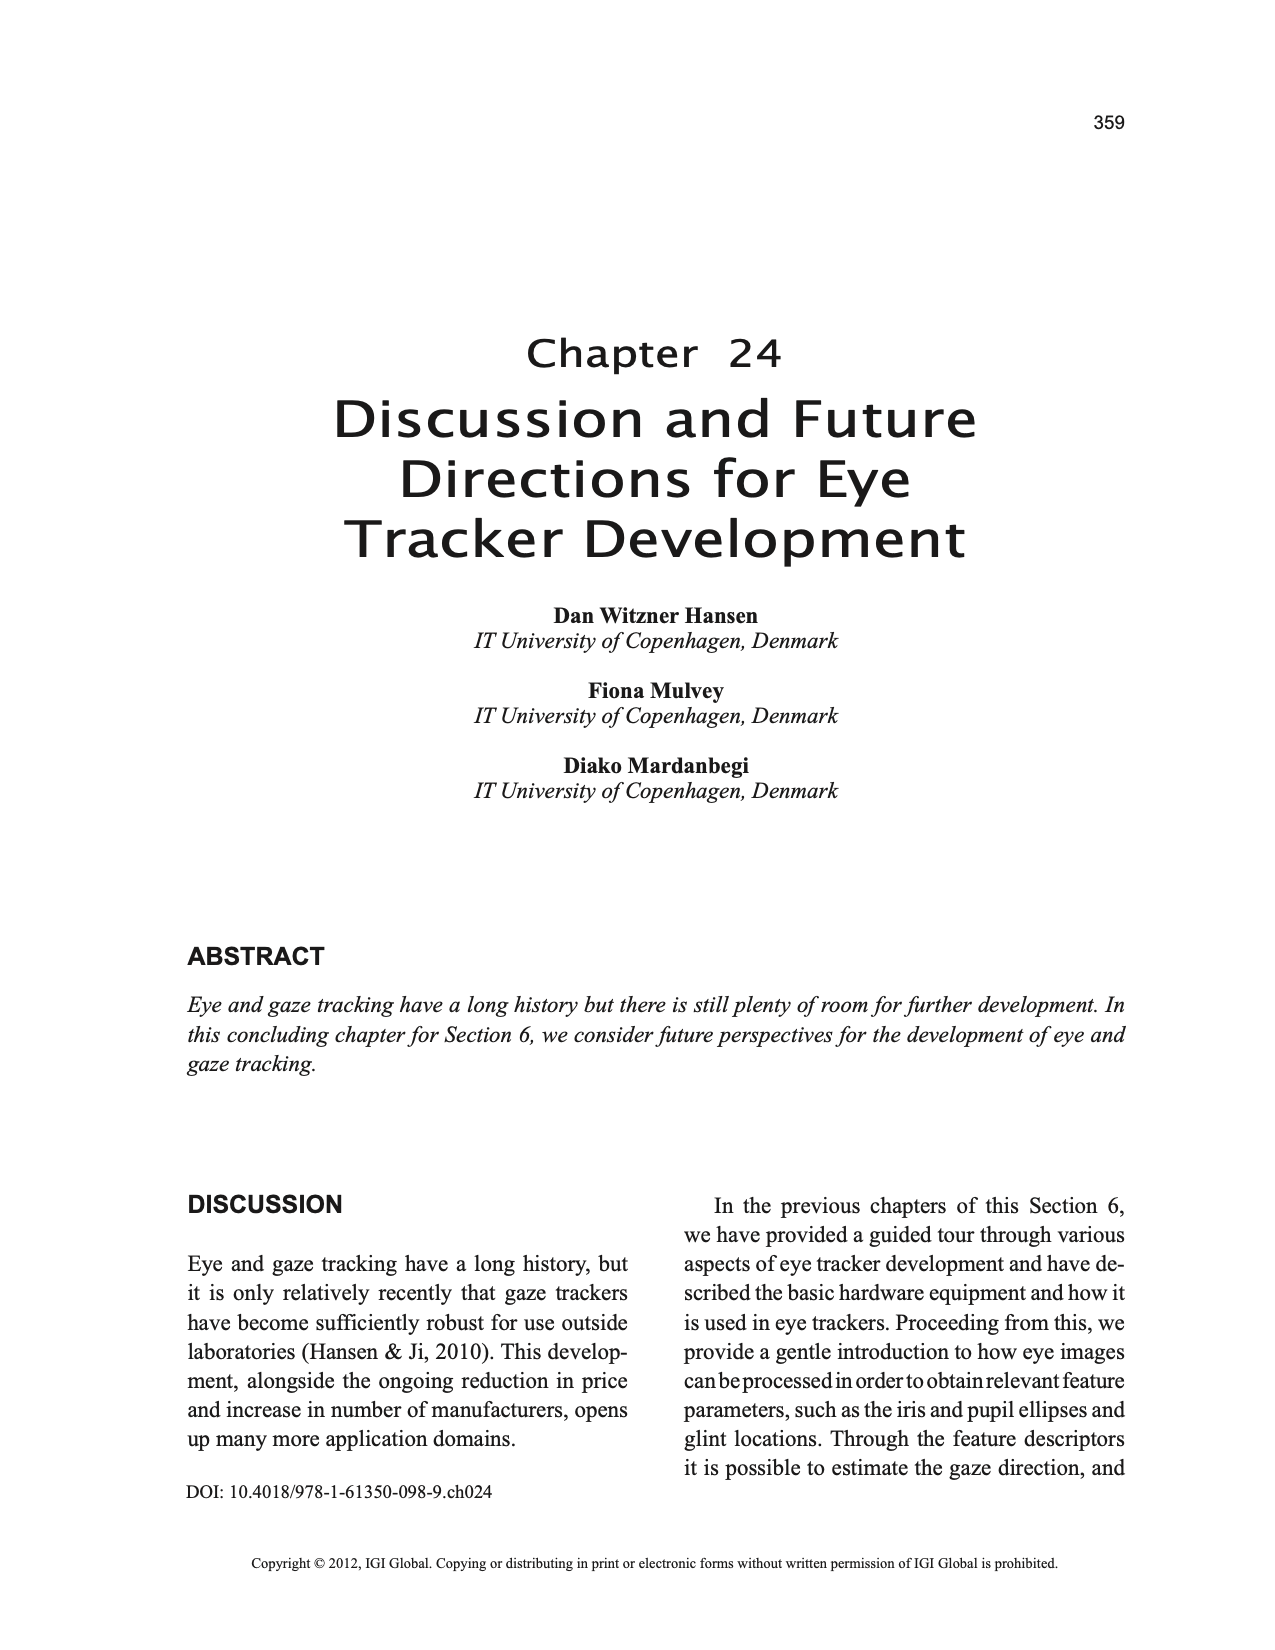 Discussion And Future Directions For Eye Tracker Development Gaze Interaction Applications Of Tracking 2012 Abstract